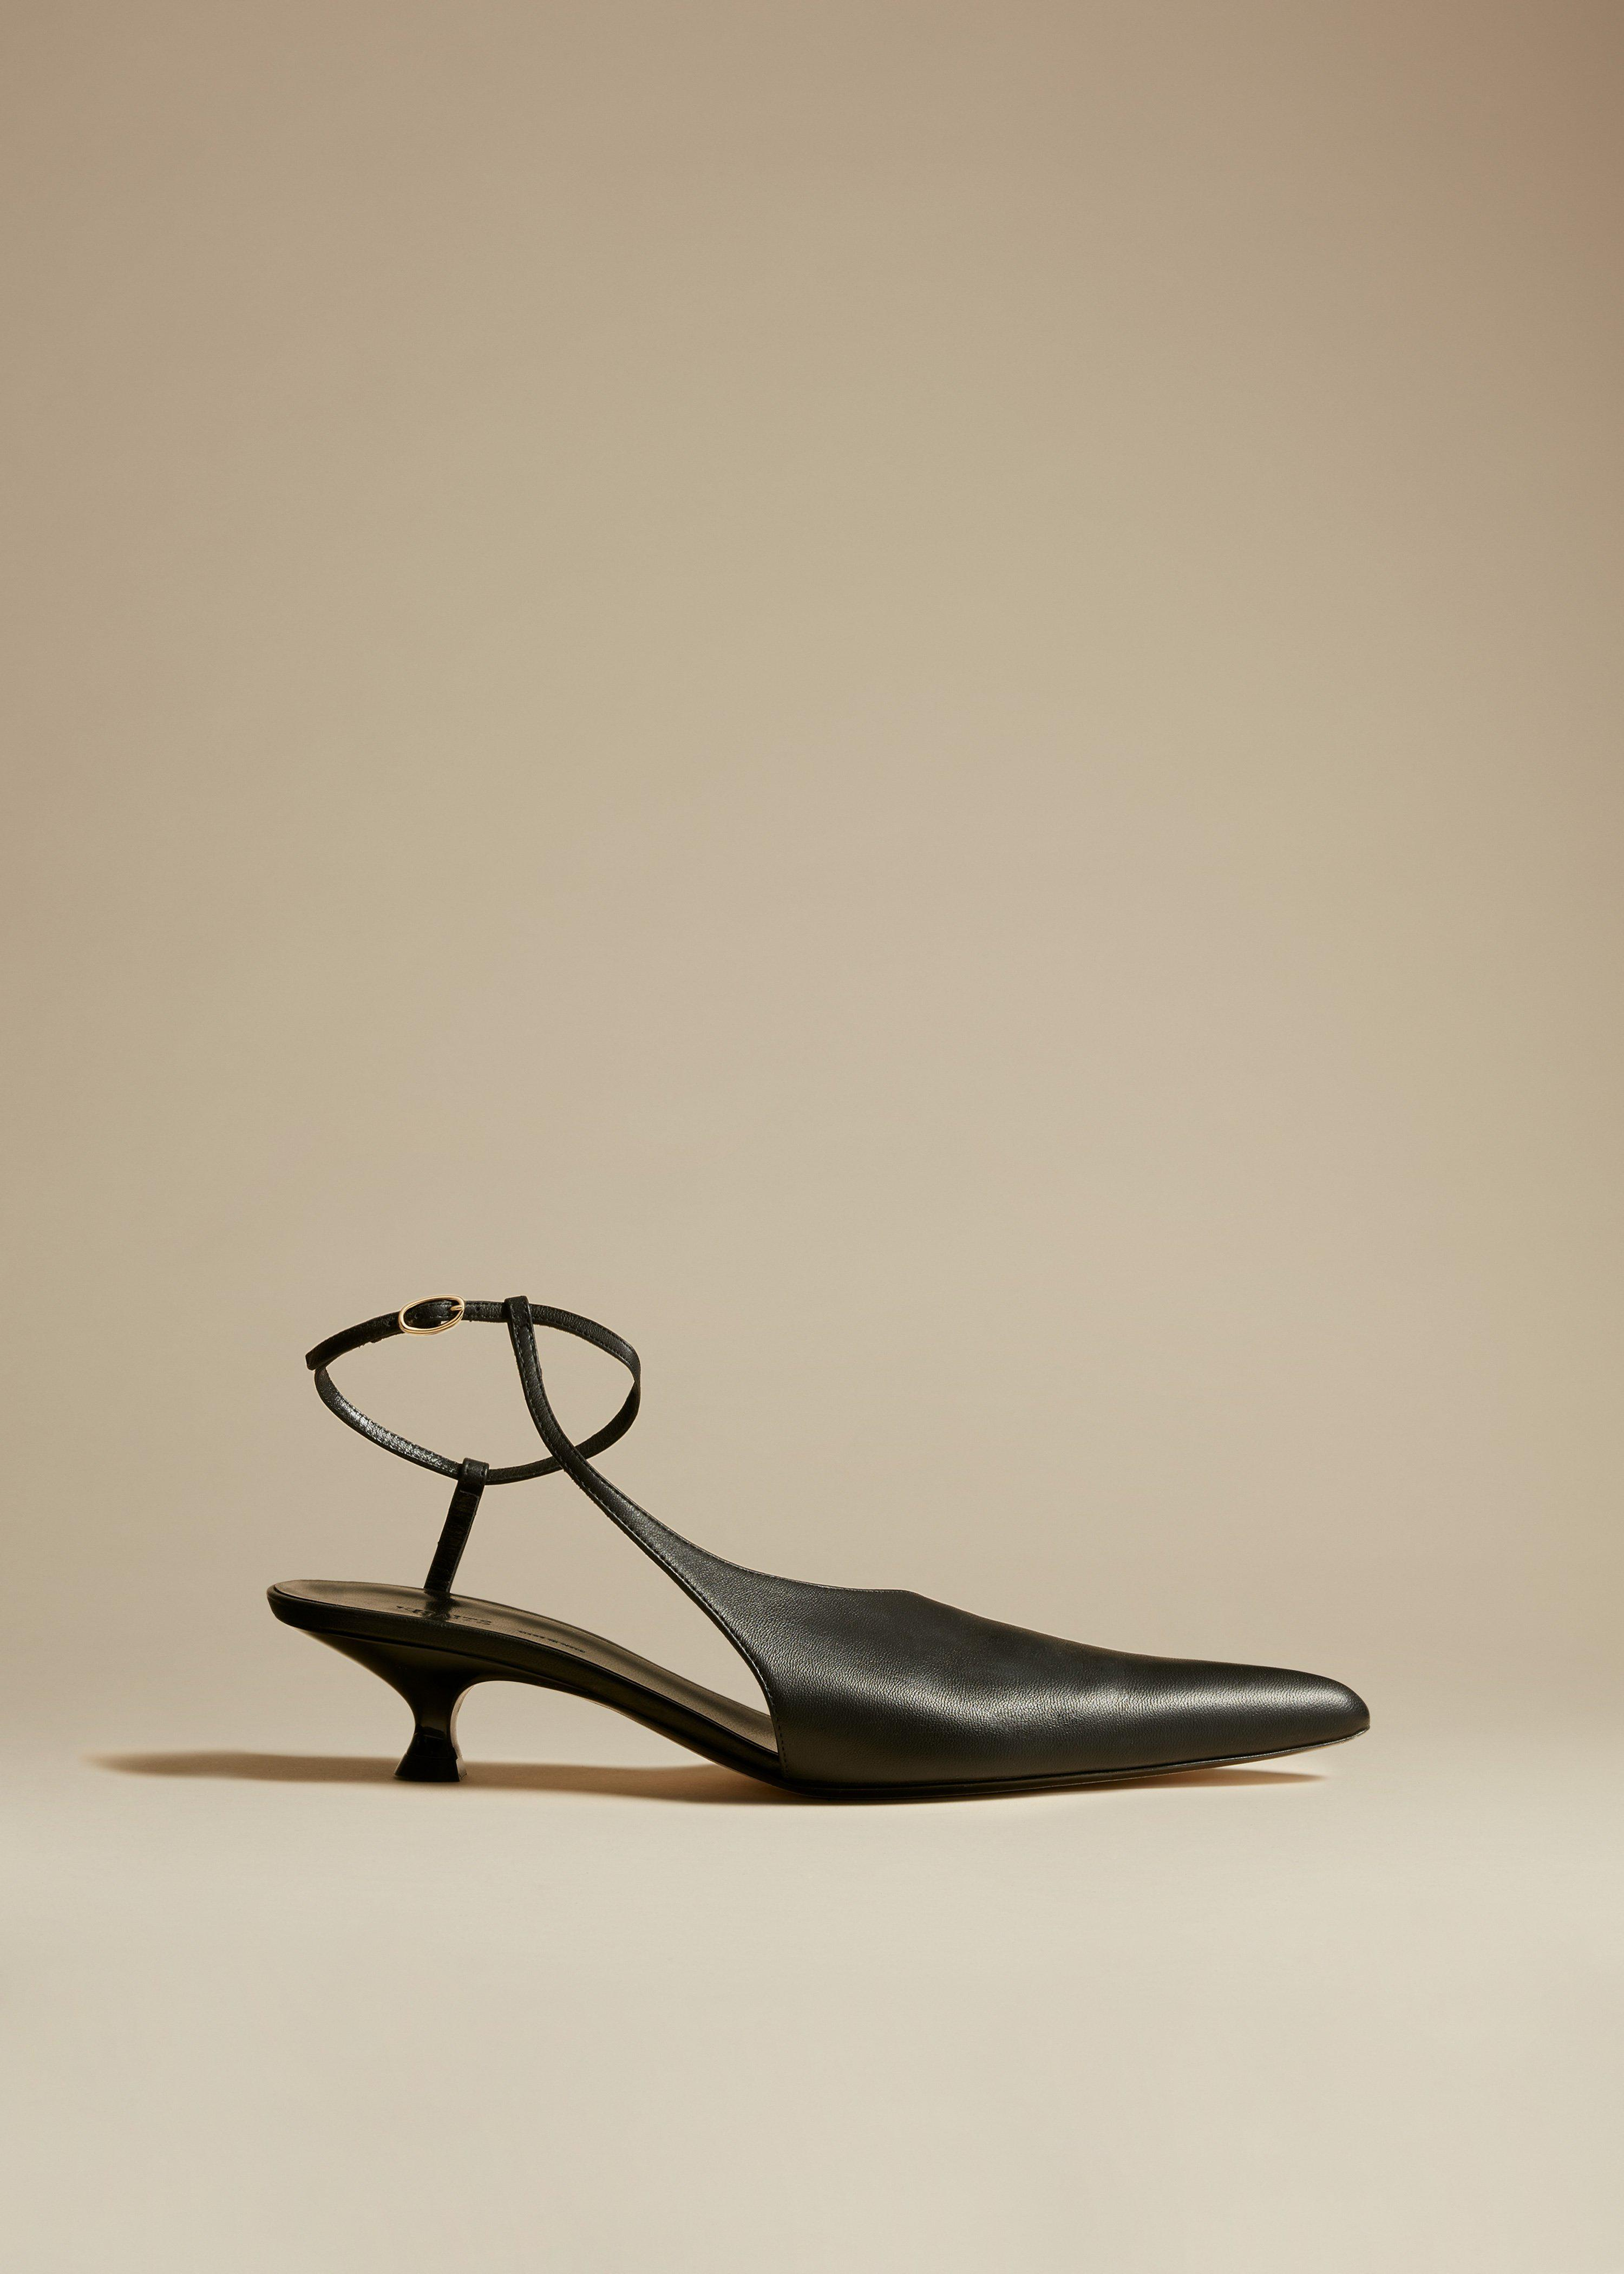 The Seville Pump in Black Leather